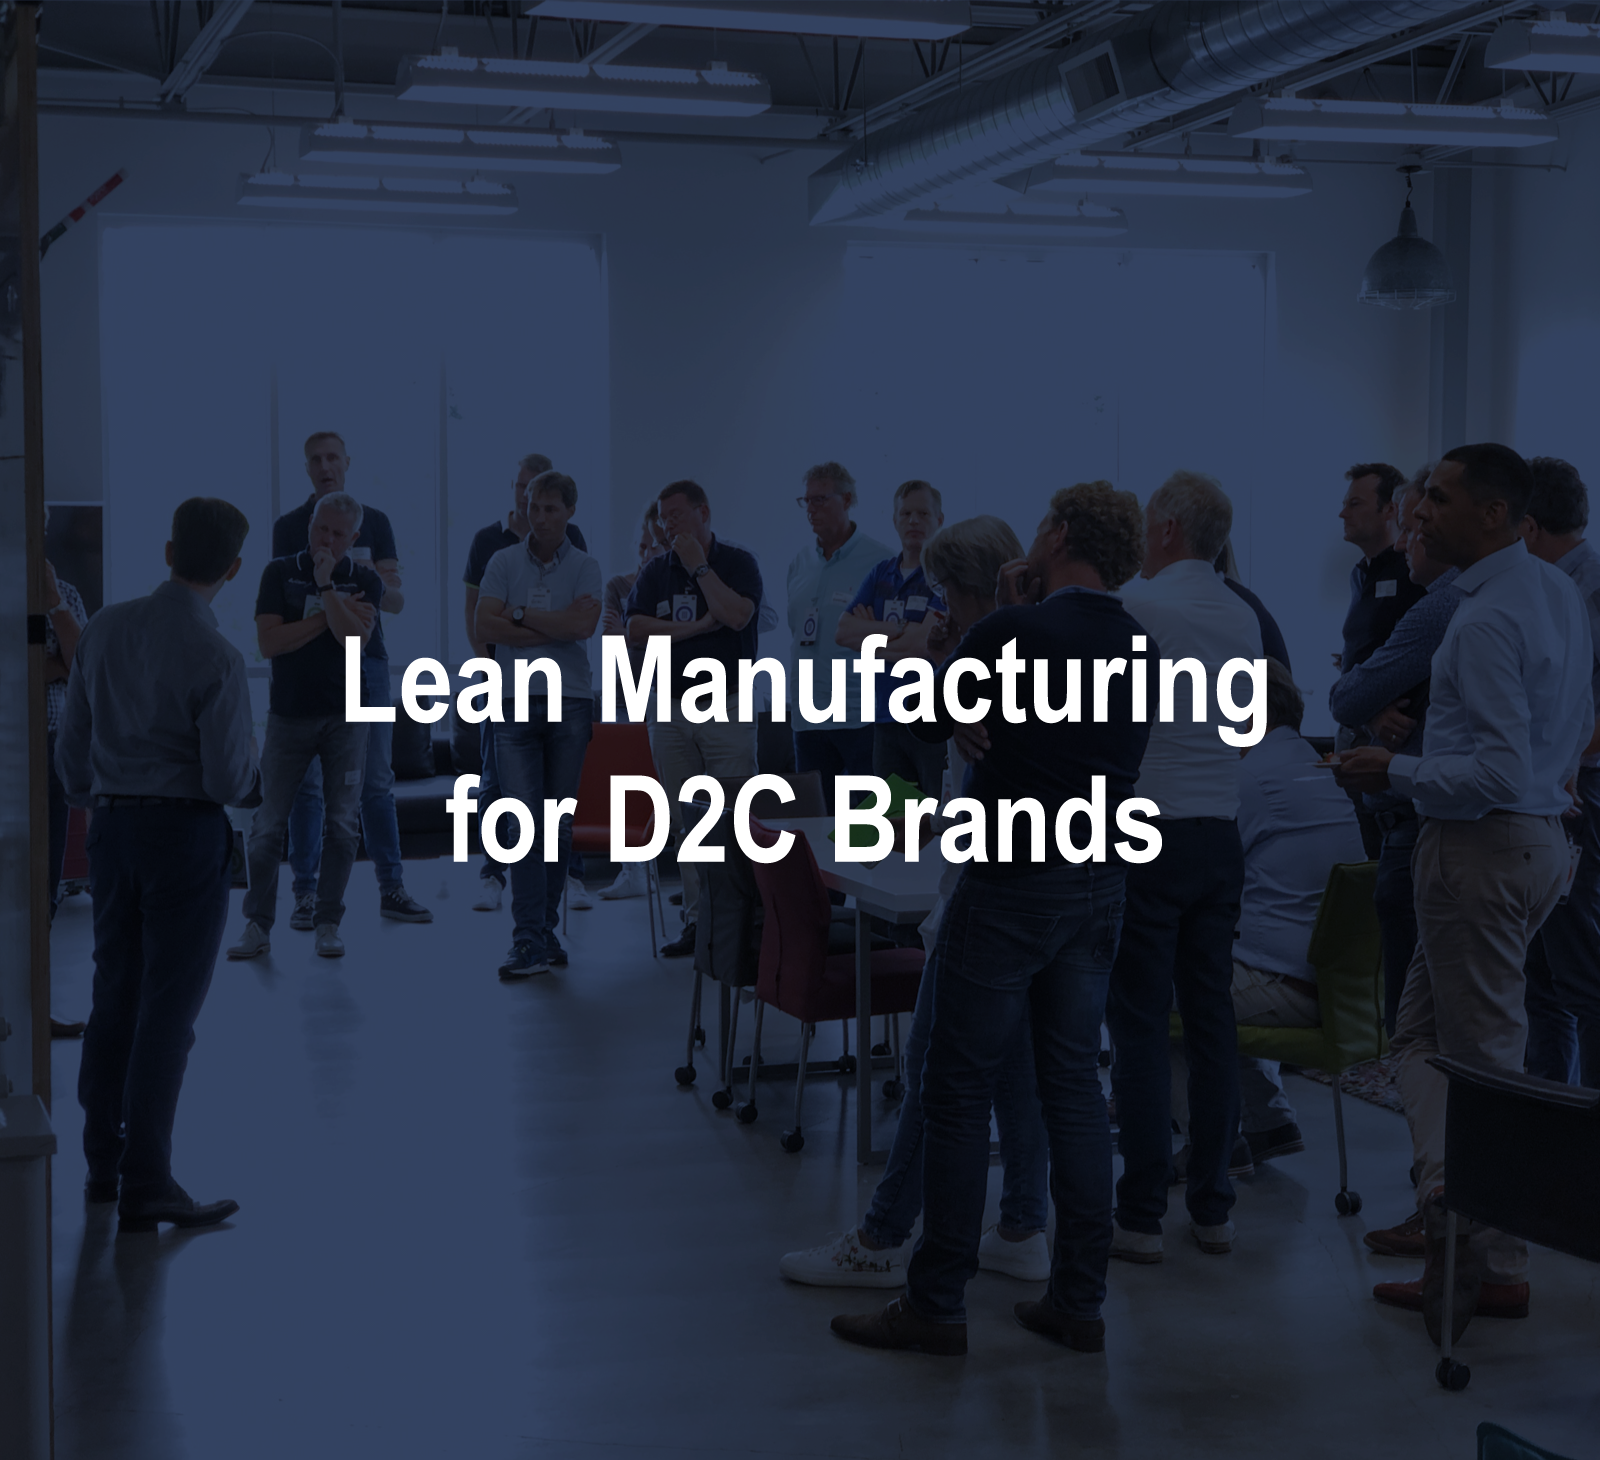 LeanManufacturing.png